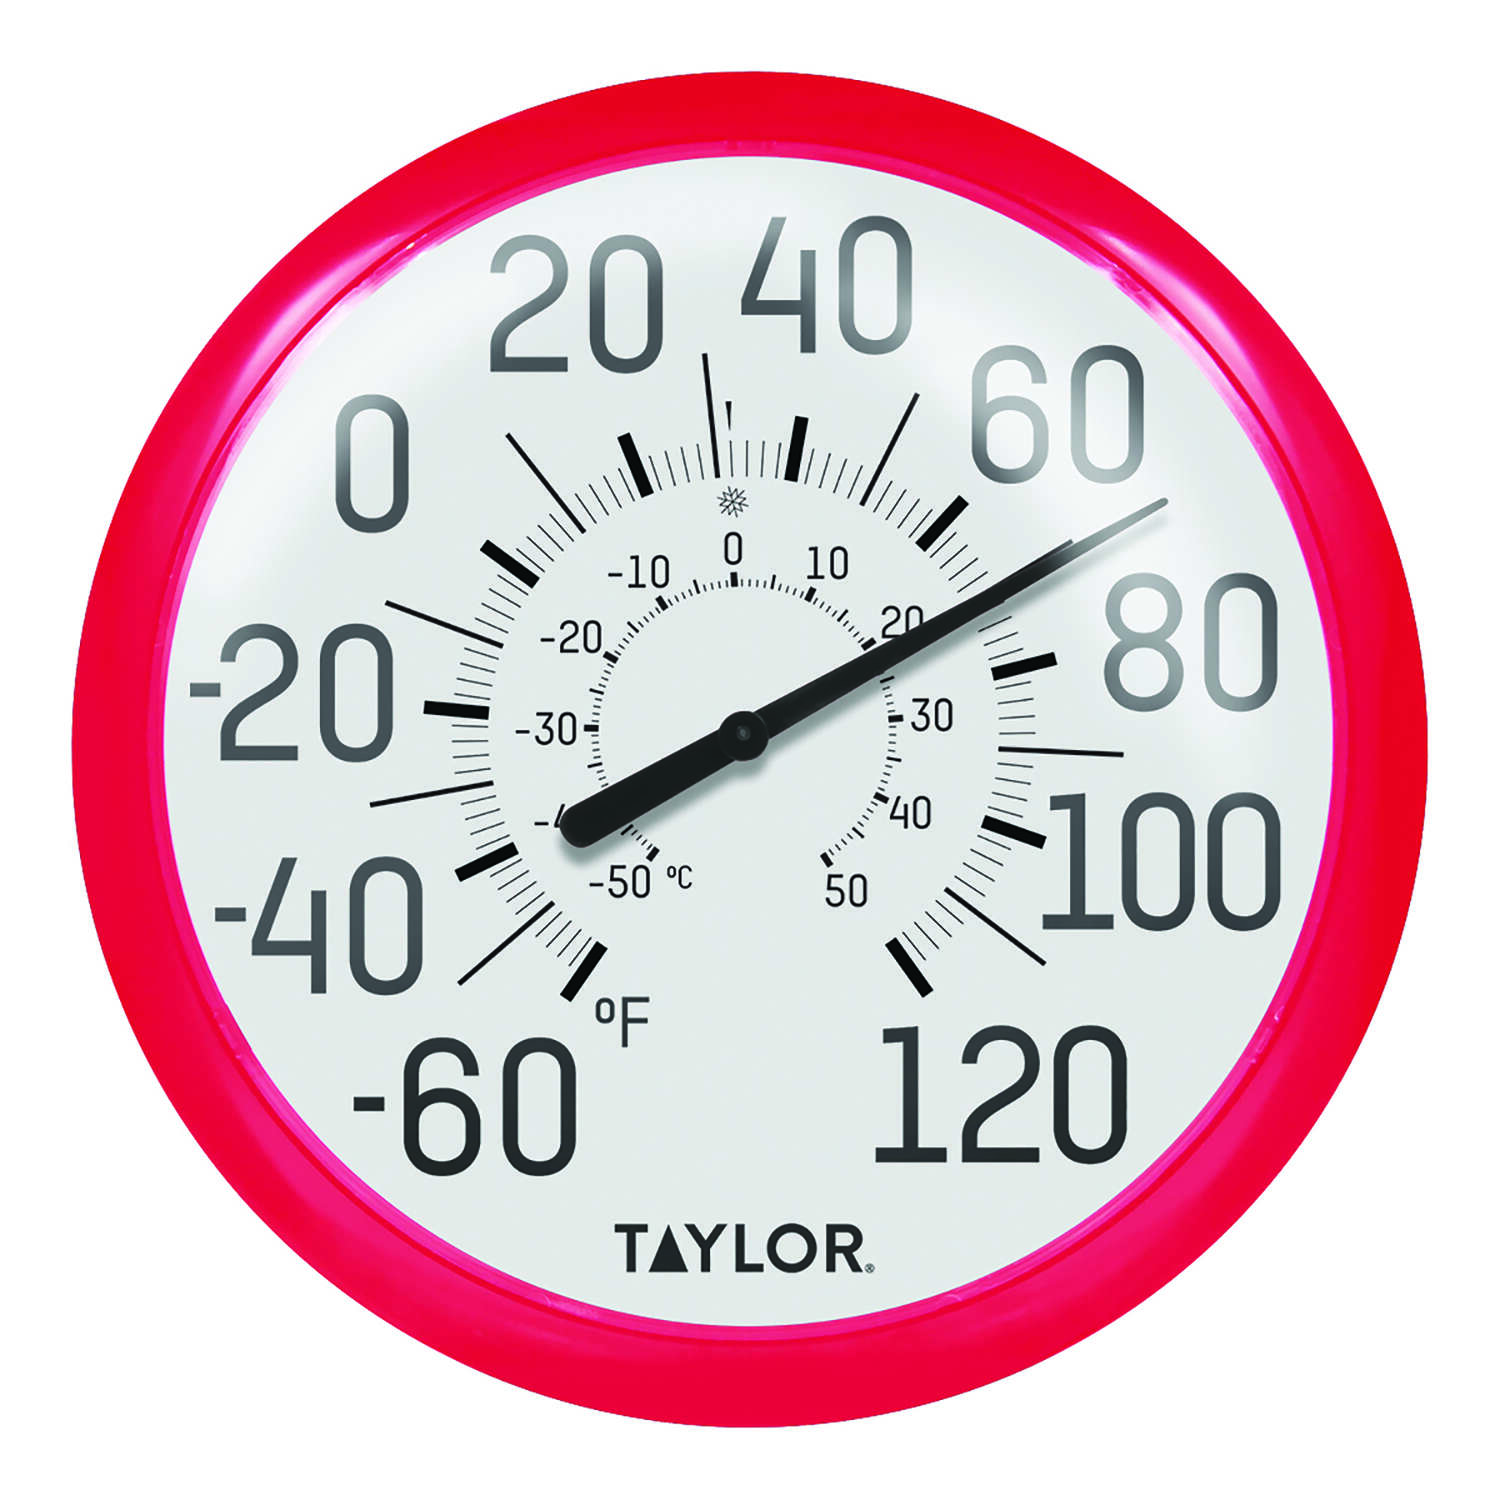 Taylor  Dial Thermometer  Plastic  Red